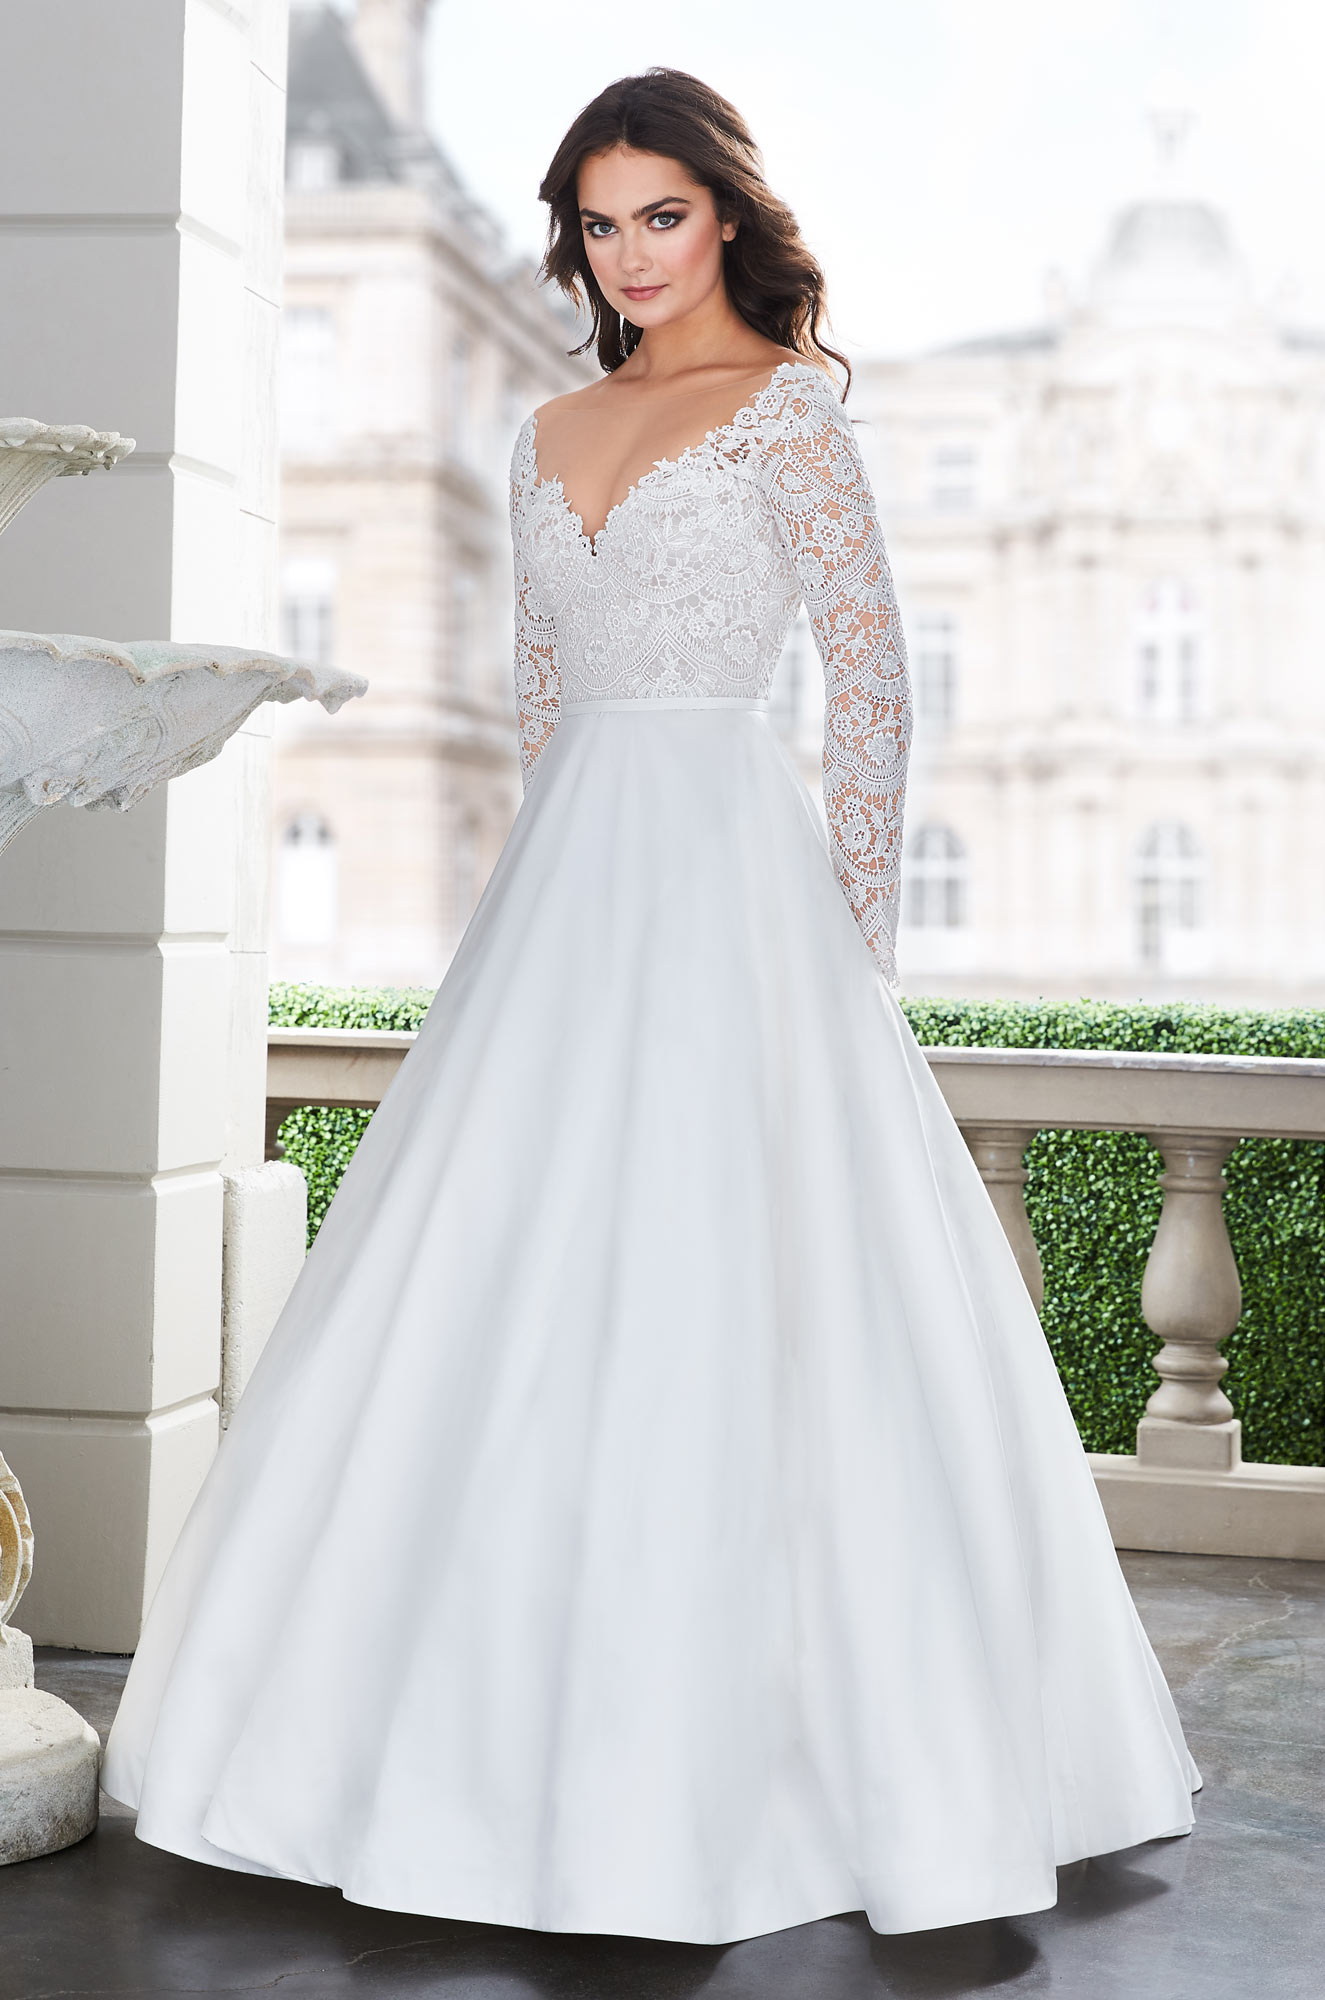 Lace Sleeve Wedding Dress – Style #4864 | Paloma Blanca